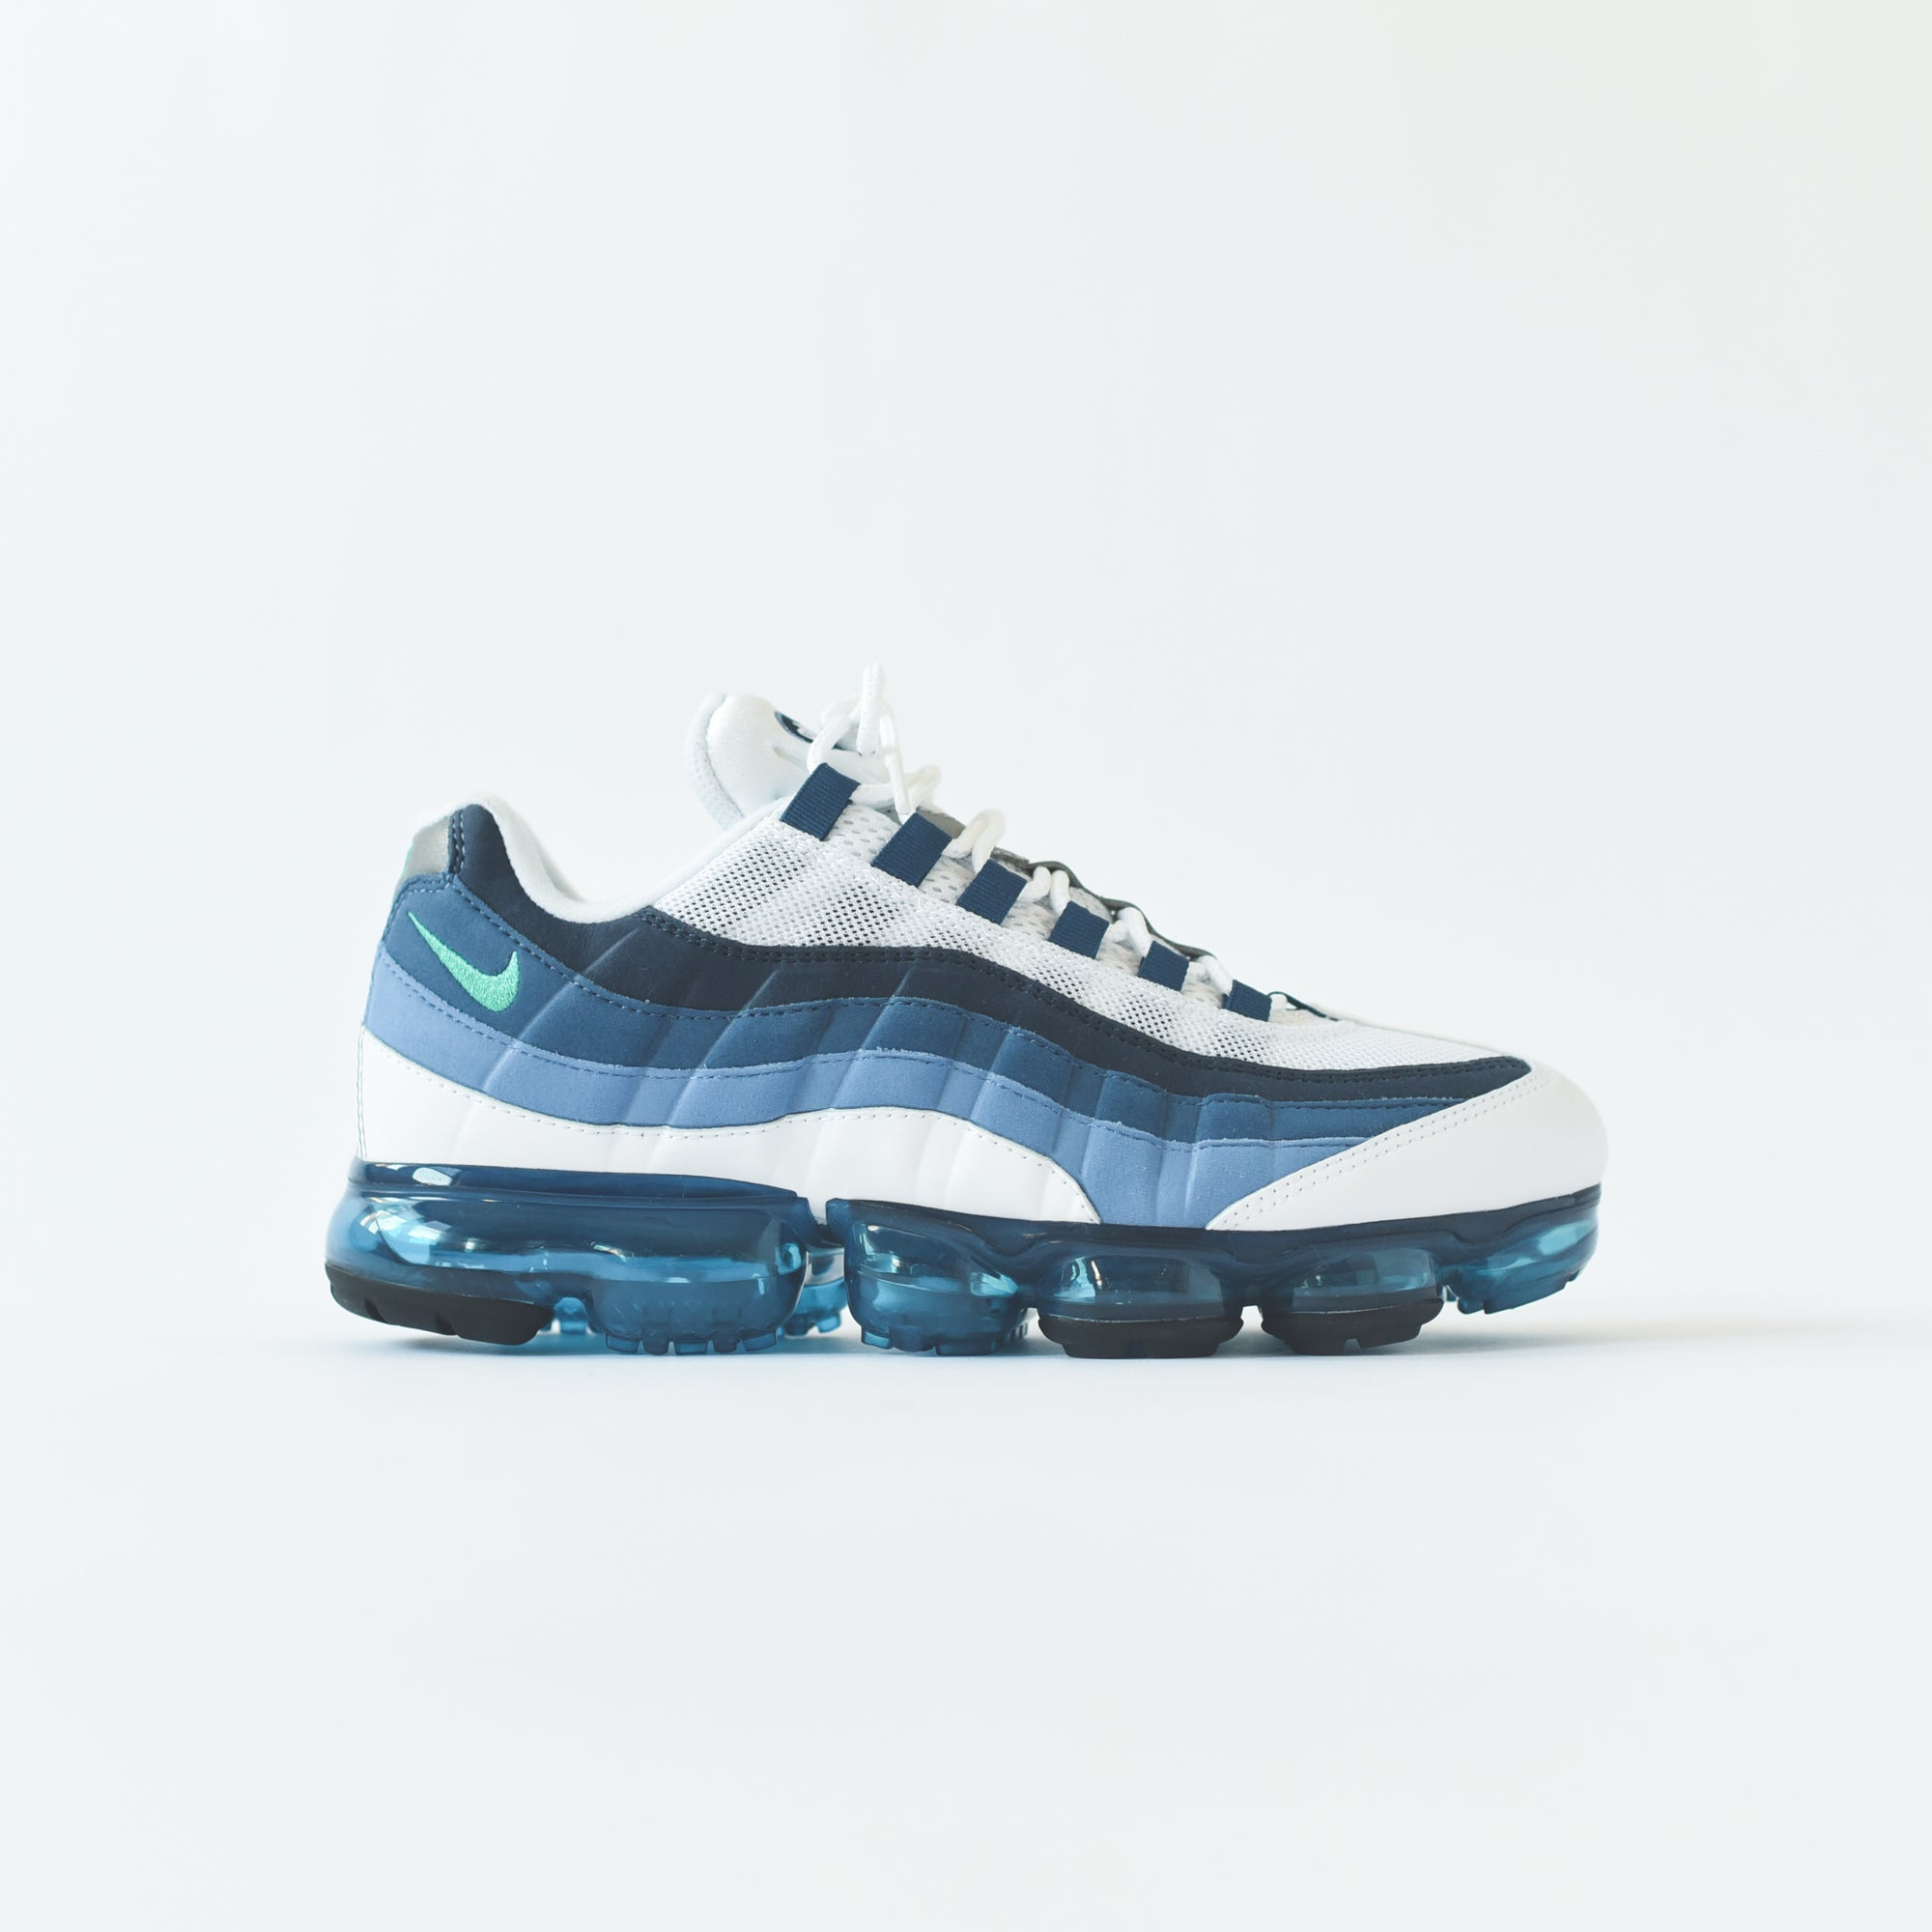 cd24bebff7 Nike Air VaporMax '95 - White / New Green / French Blue Lake. September 06,  2018. -3. -1